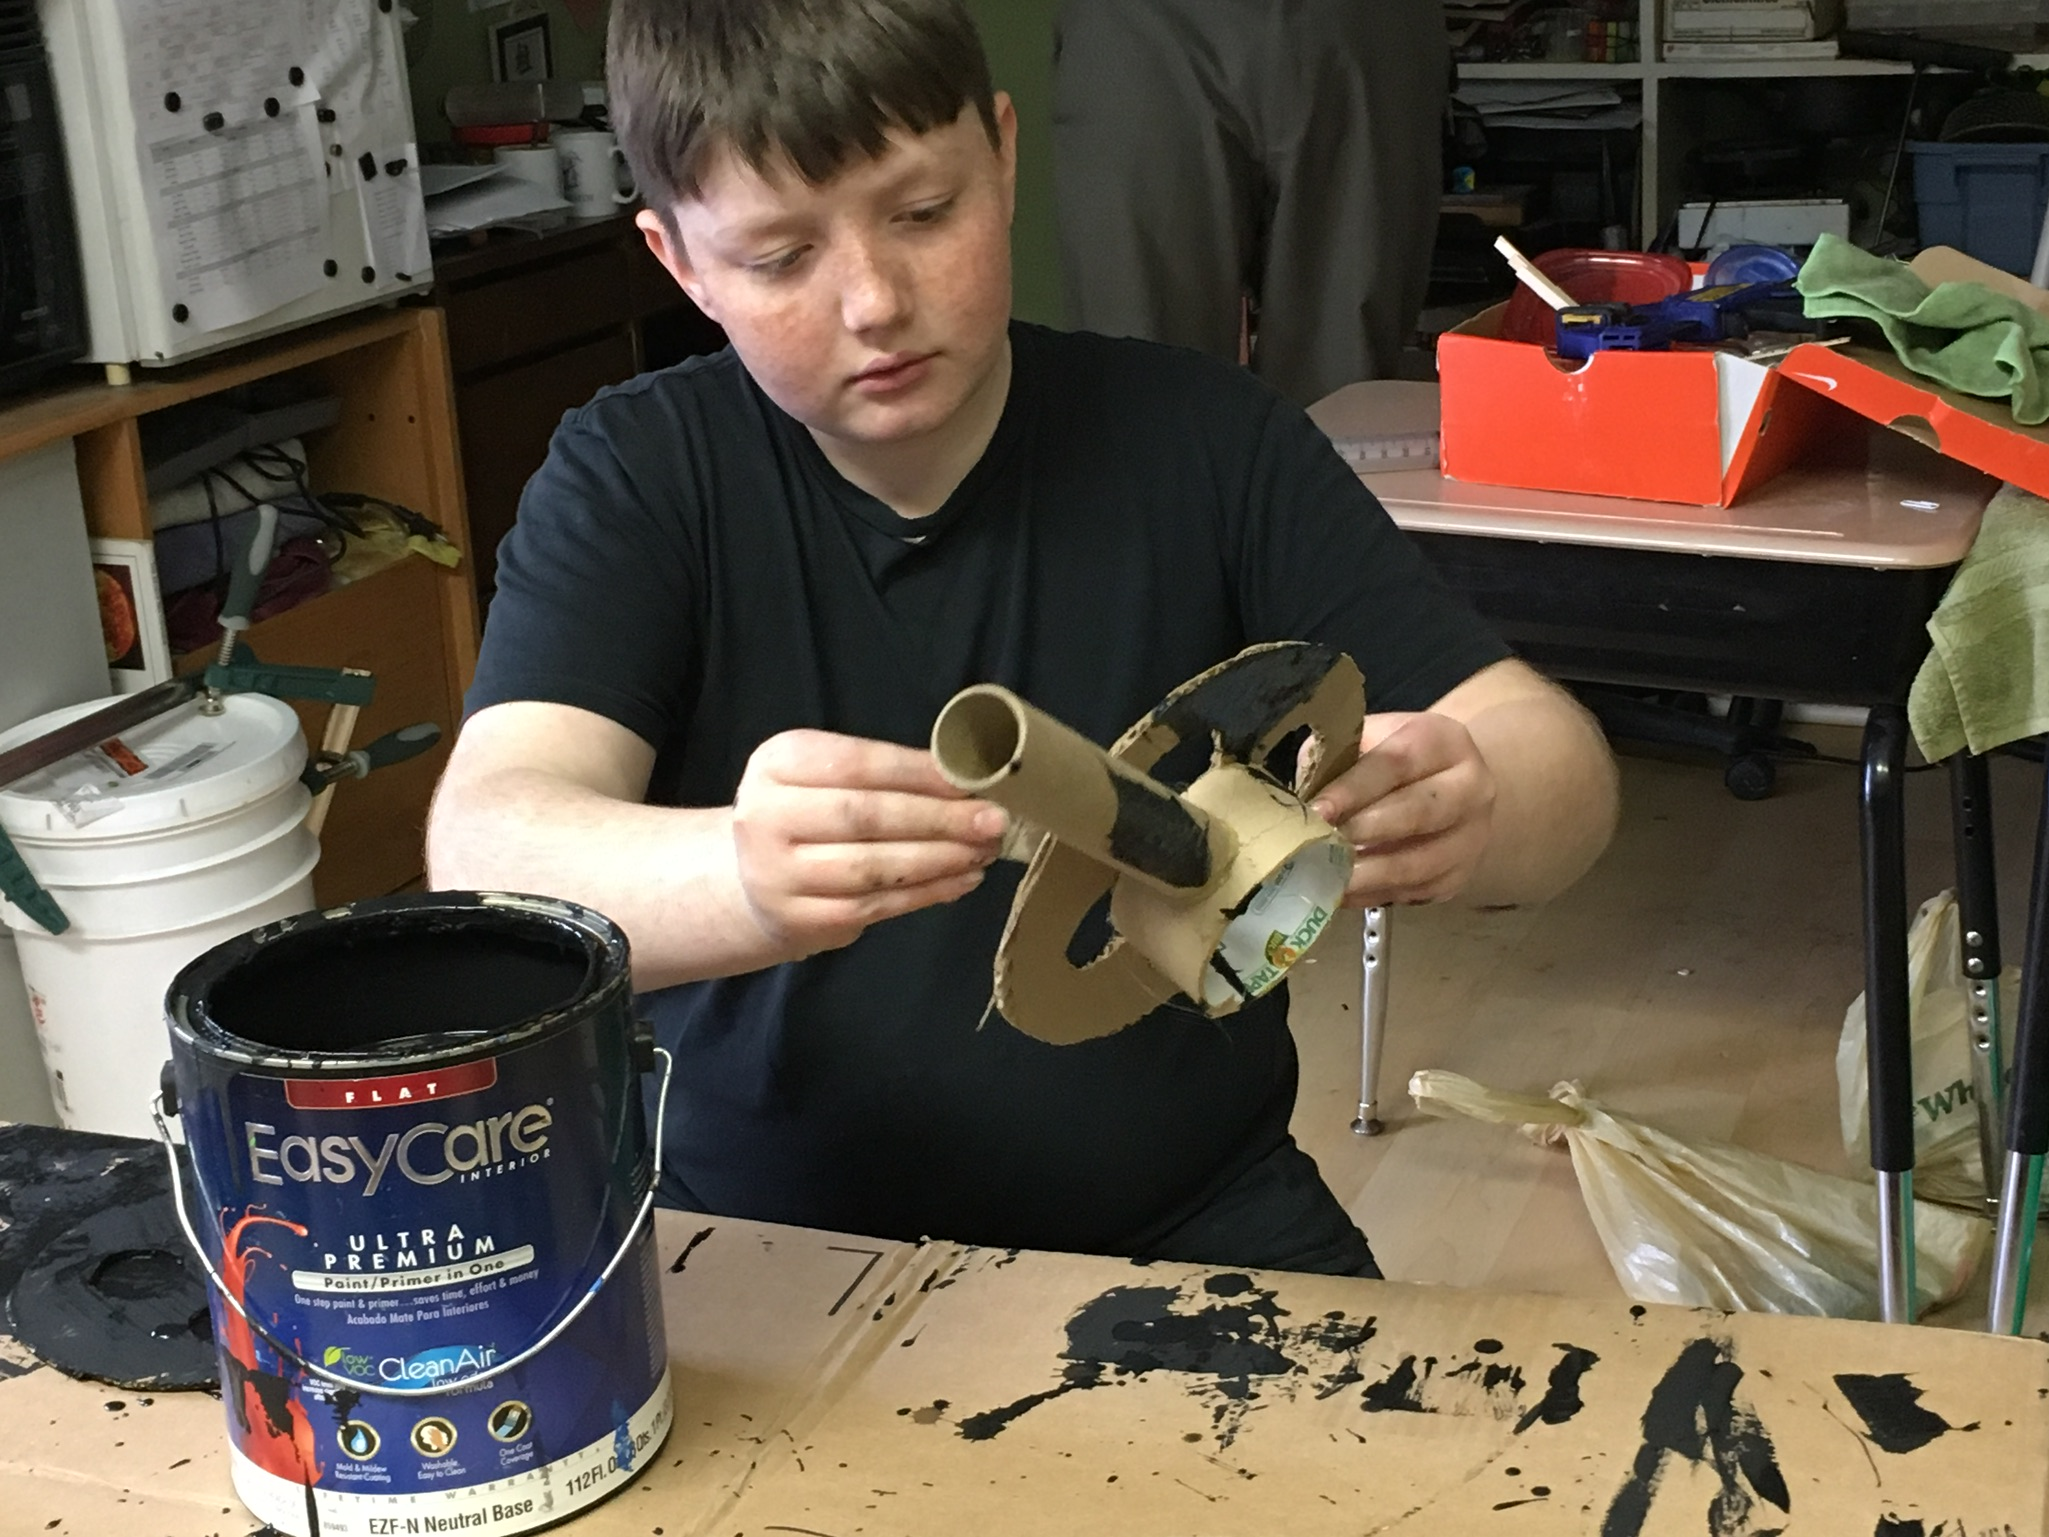 6th grader Oak Clarke of East Haven works in the Props elective to craft an old fashioned movie camera and film reel for Riverside's production of Singin' in the Rain.  Performances are Friday and Saturday, March 24 and 25 at 7:00 pm in the Barn at Riverside.  The show will last about 90 minutes, including an intermission and bake sale, and is appropriate for all audiences. Admission is by donation.